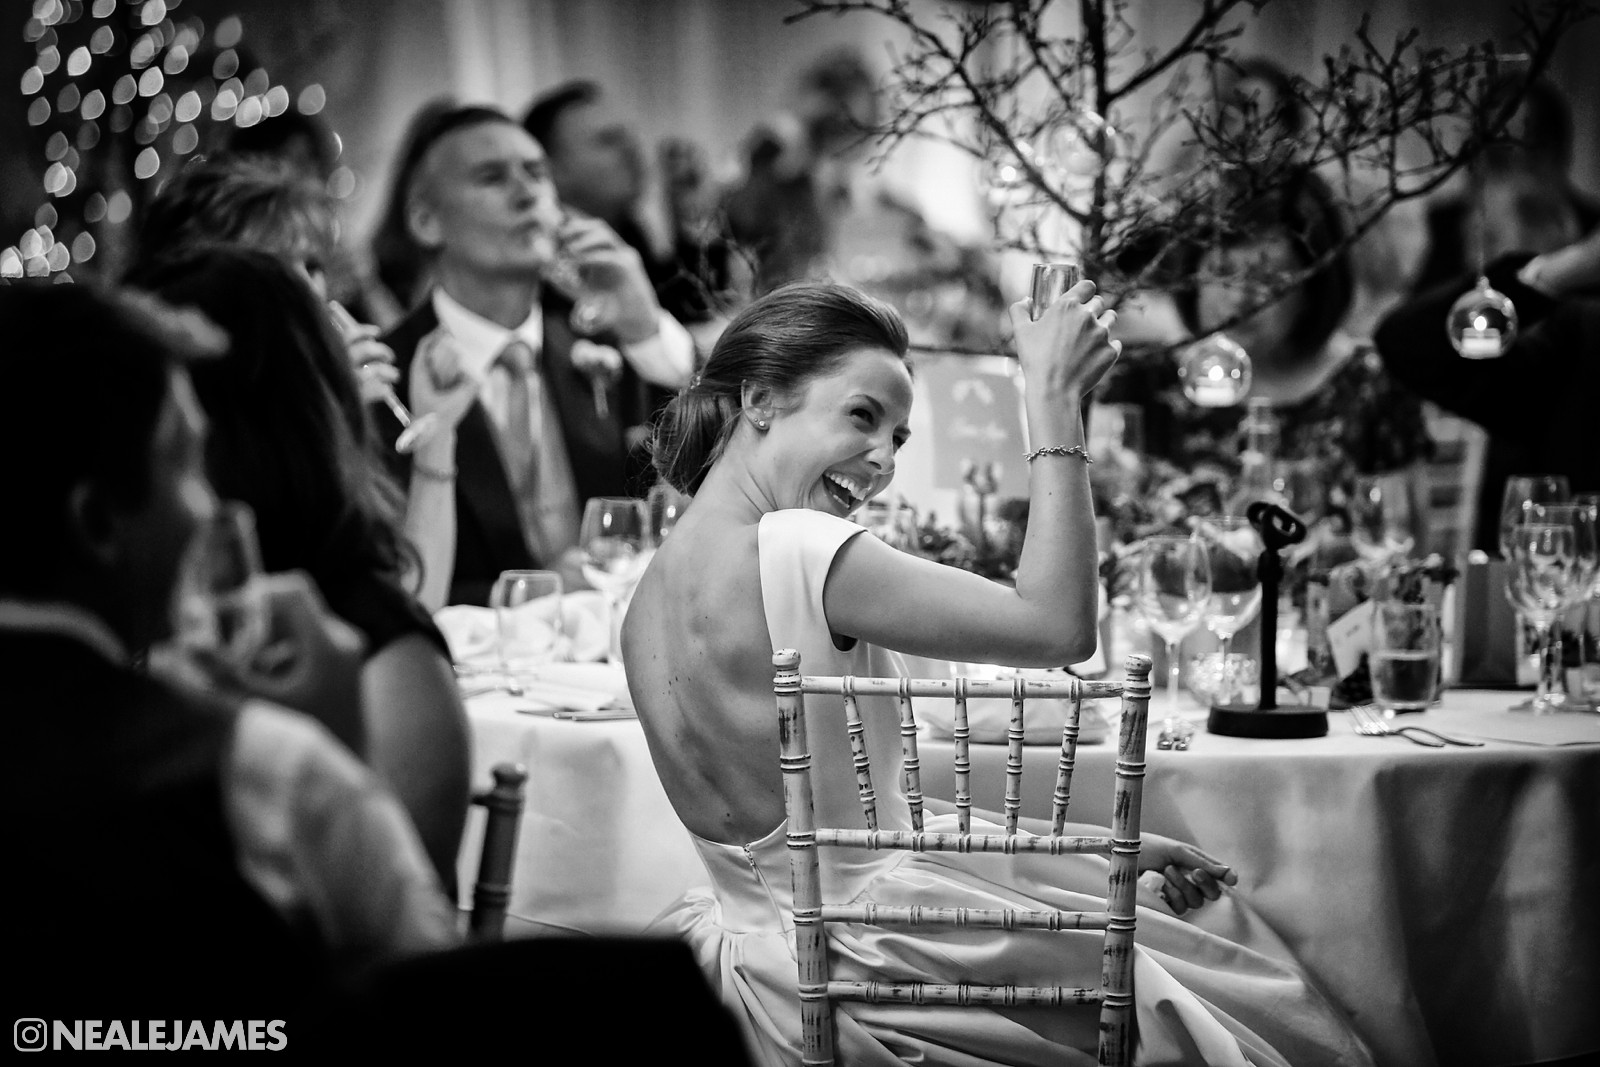 Black and white image of a bride raising a toast during the speeches